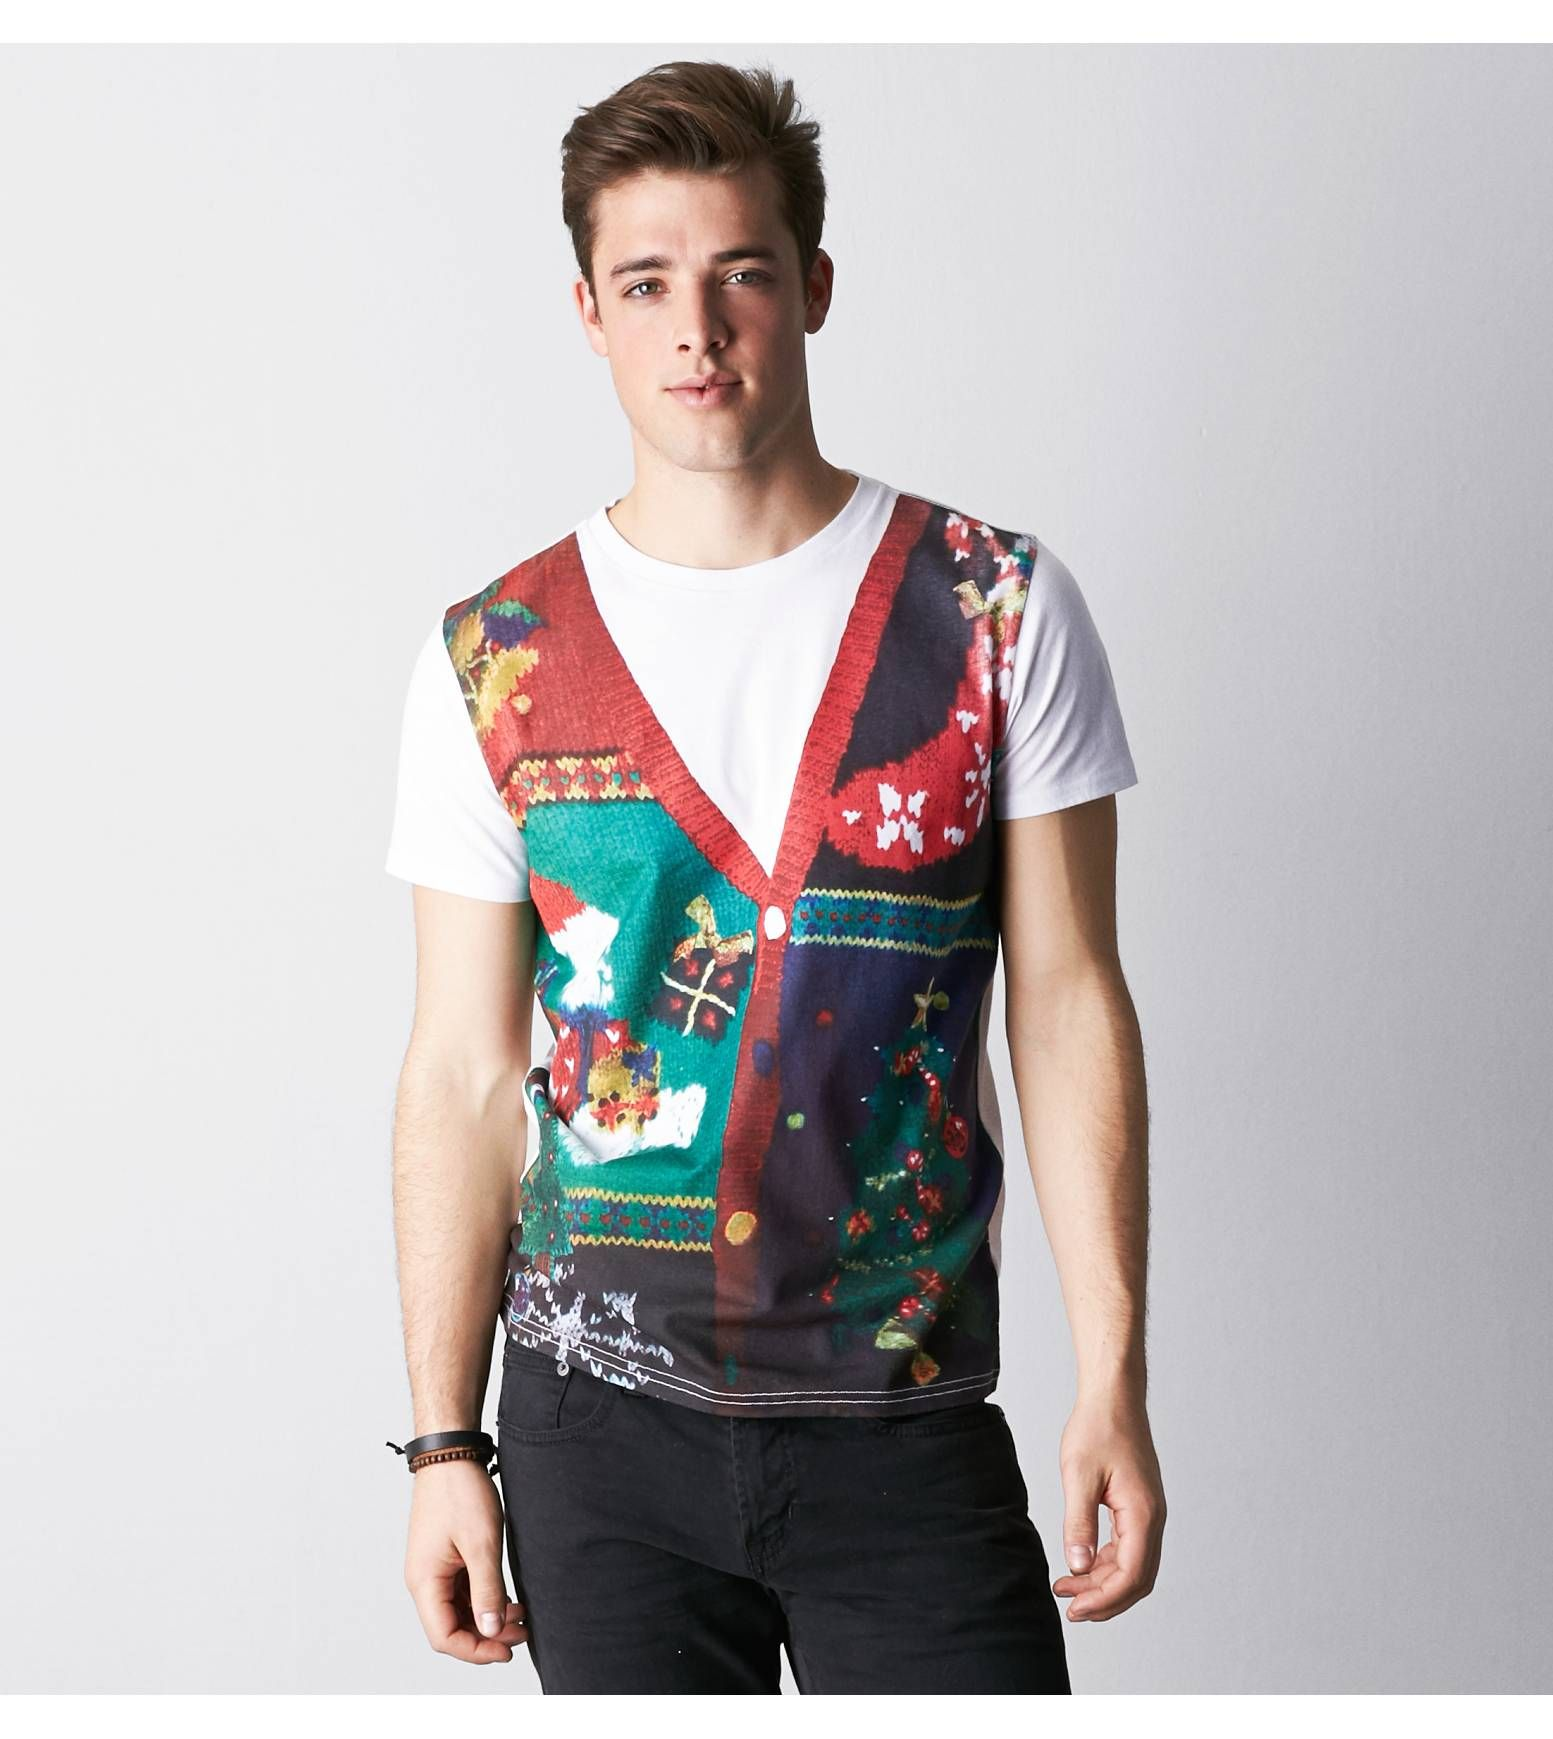 White AEO Holiday Sweater Vest Graphic T-Shirt. Show us your ...